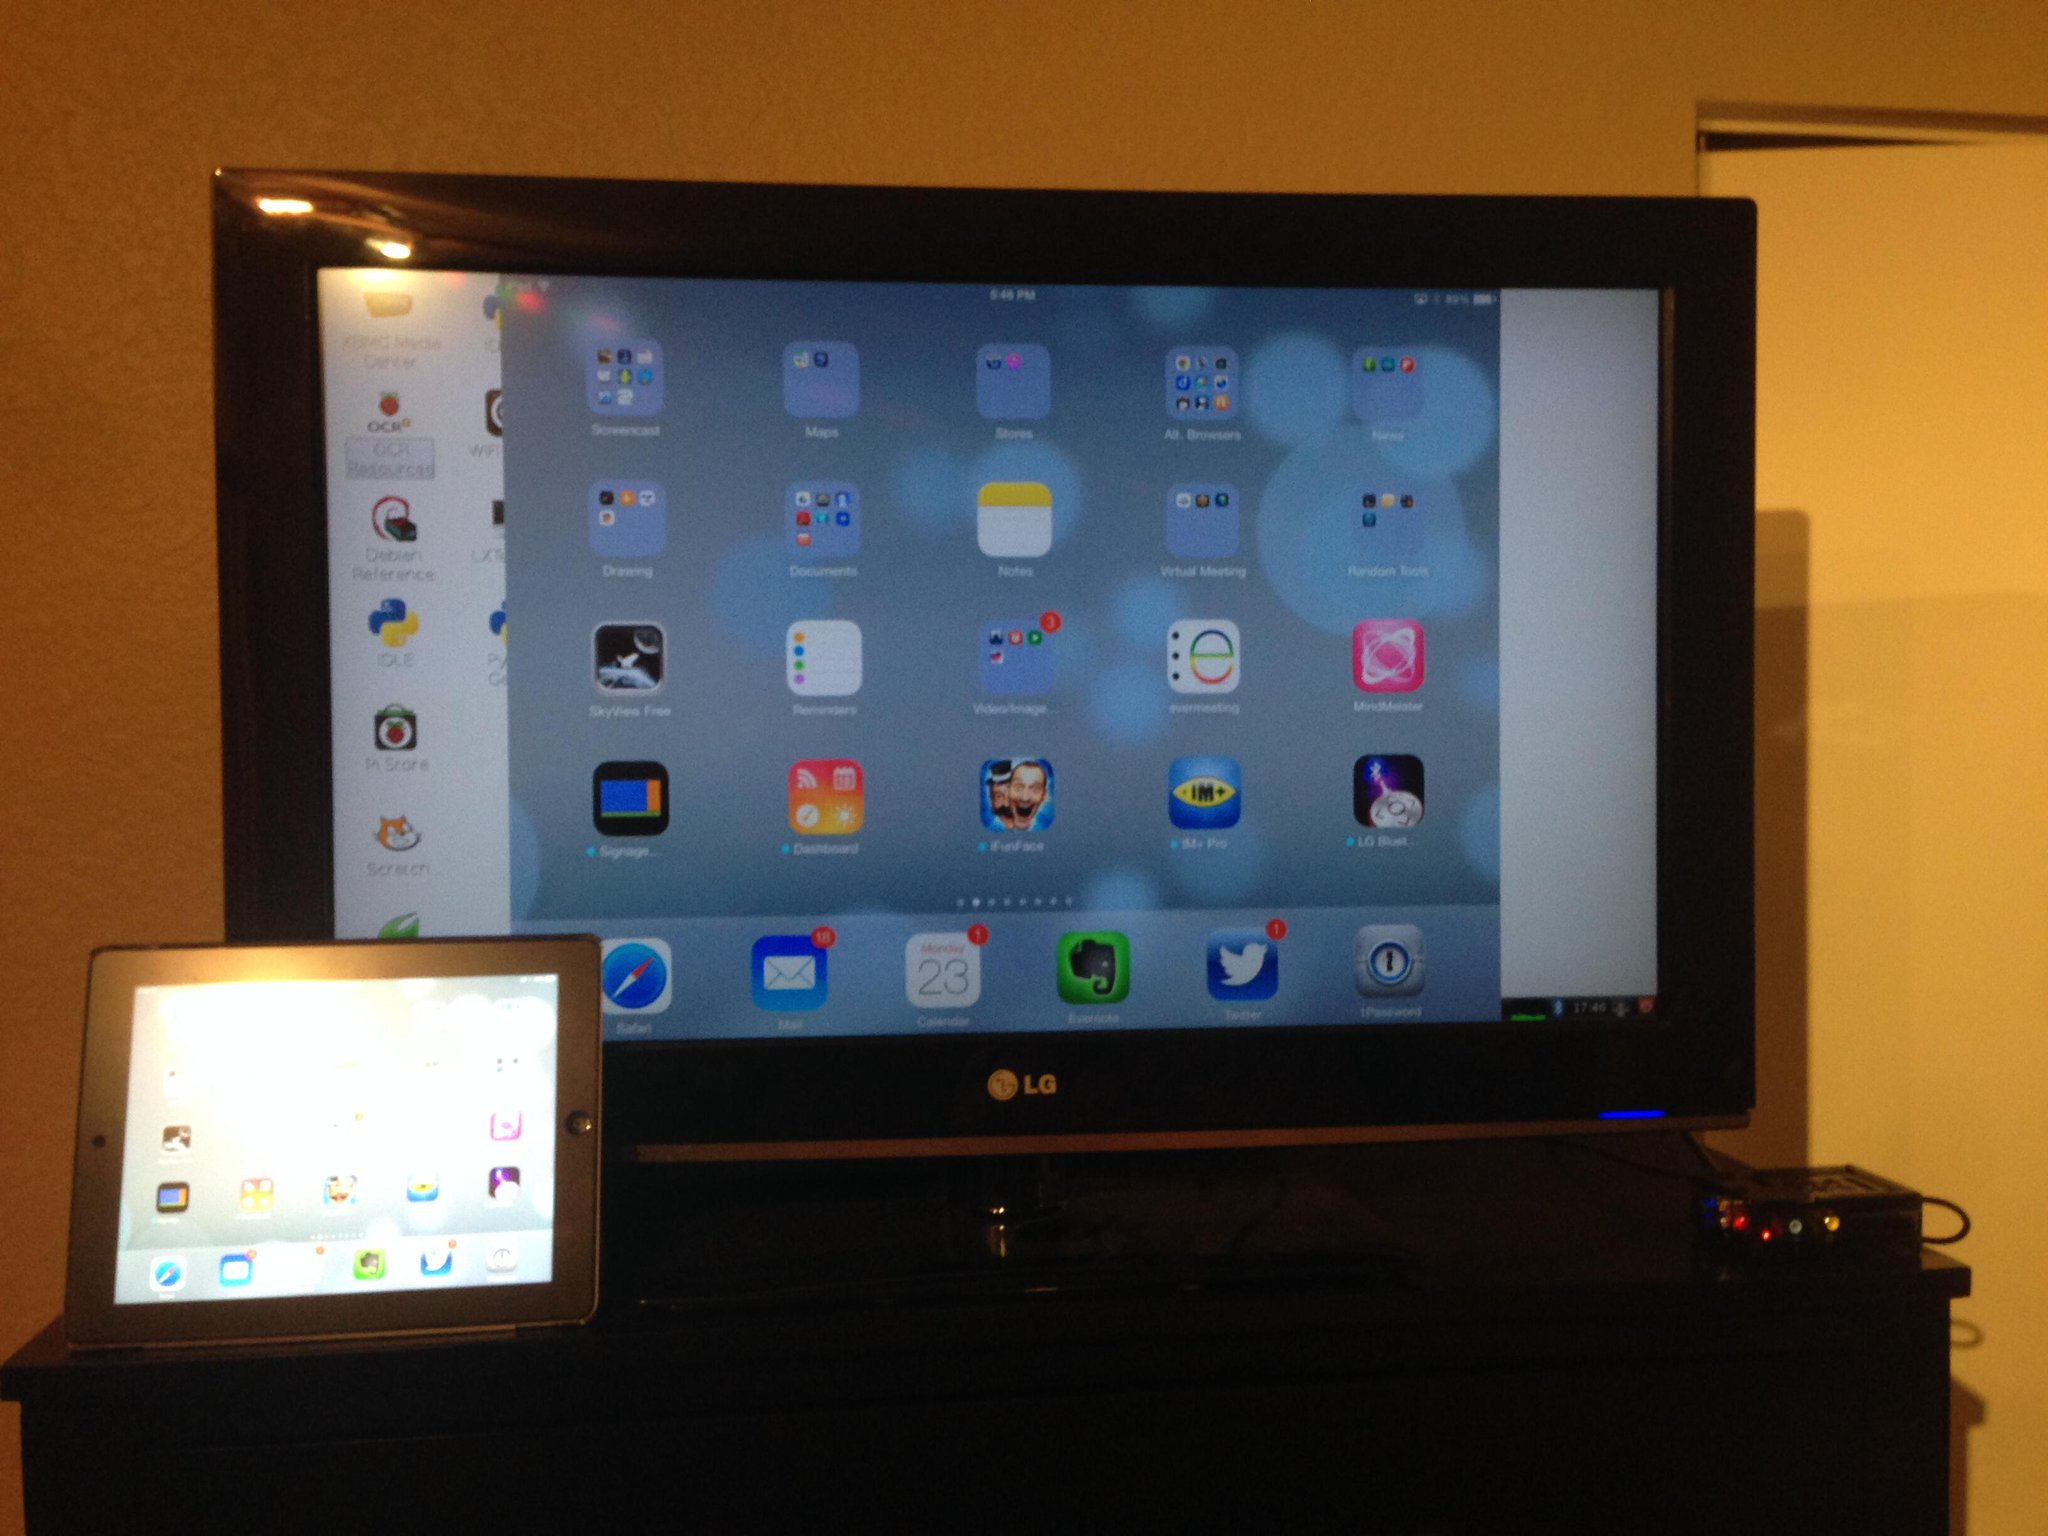 RT @steinman: Using Airplay mirroring on the Raspberry Pi. Just like an Apple TV, only half the price! #CEP811 http://t.co/R3Id0eydPr